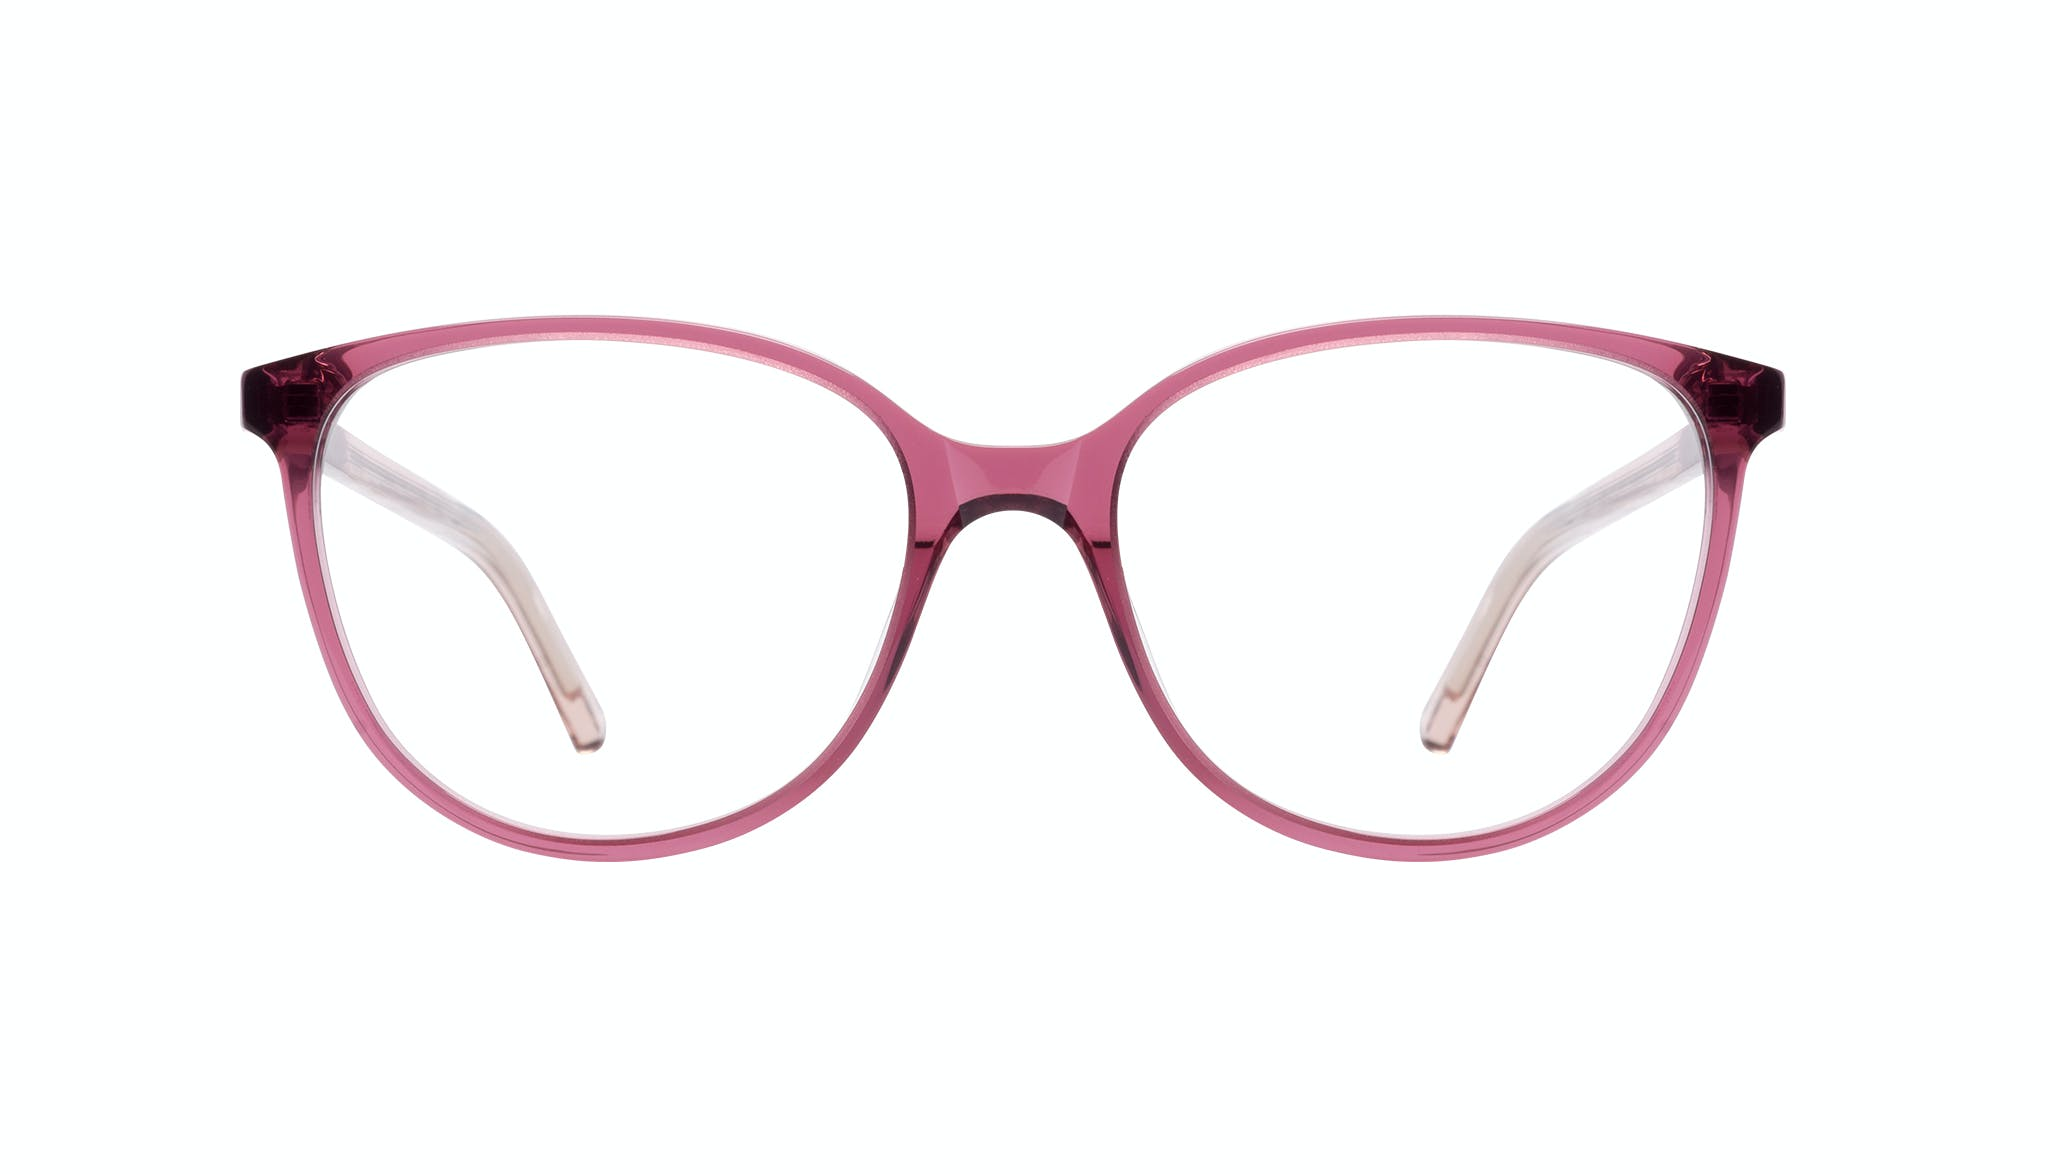 Affordable Fashion Glasses Cat Eye Eyeglasses Women Imagine Petite Berry